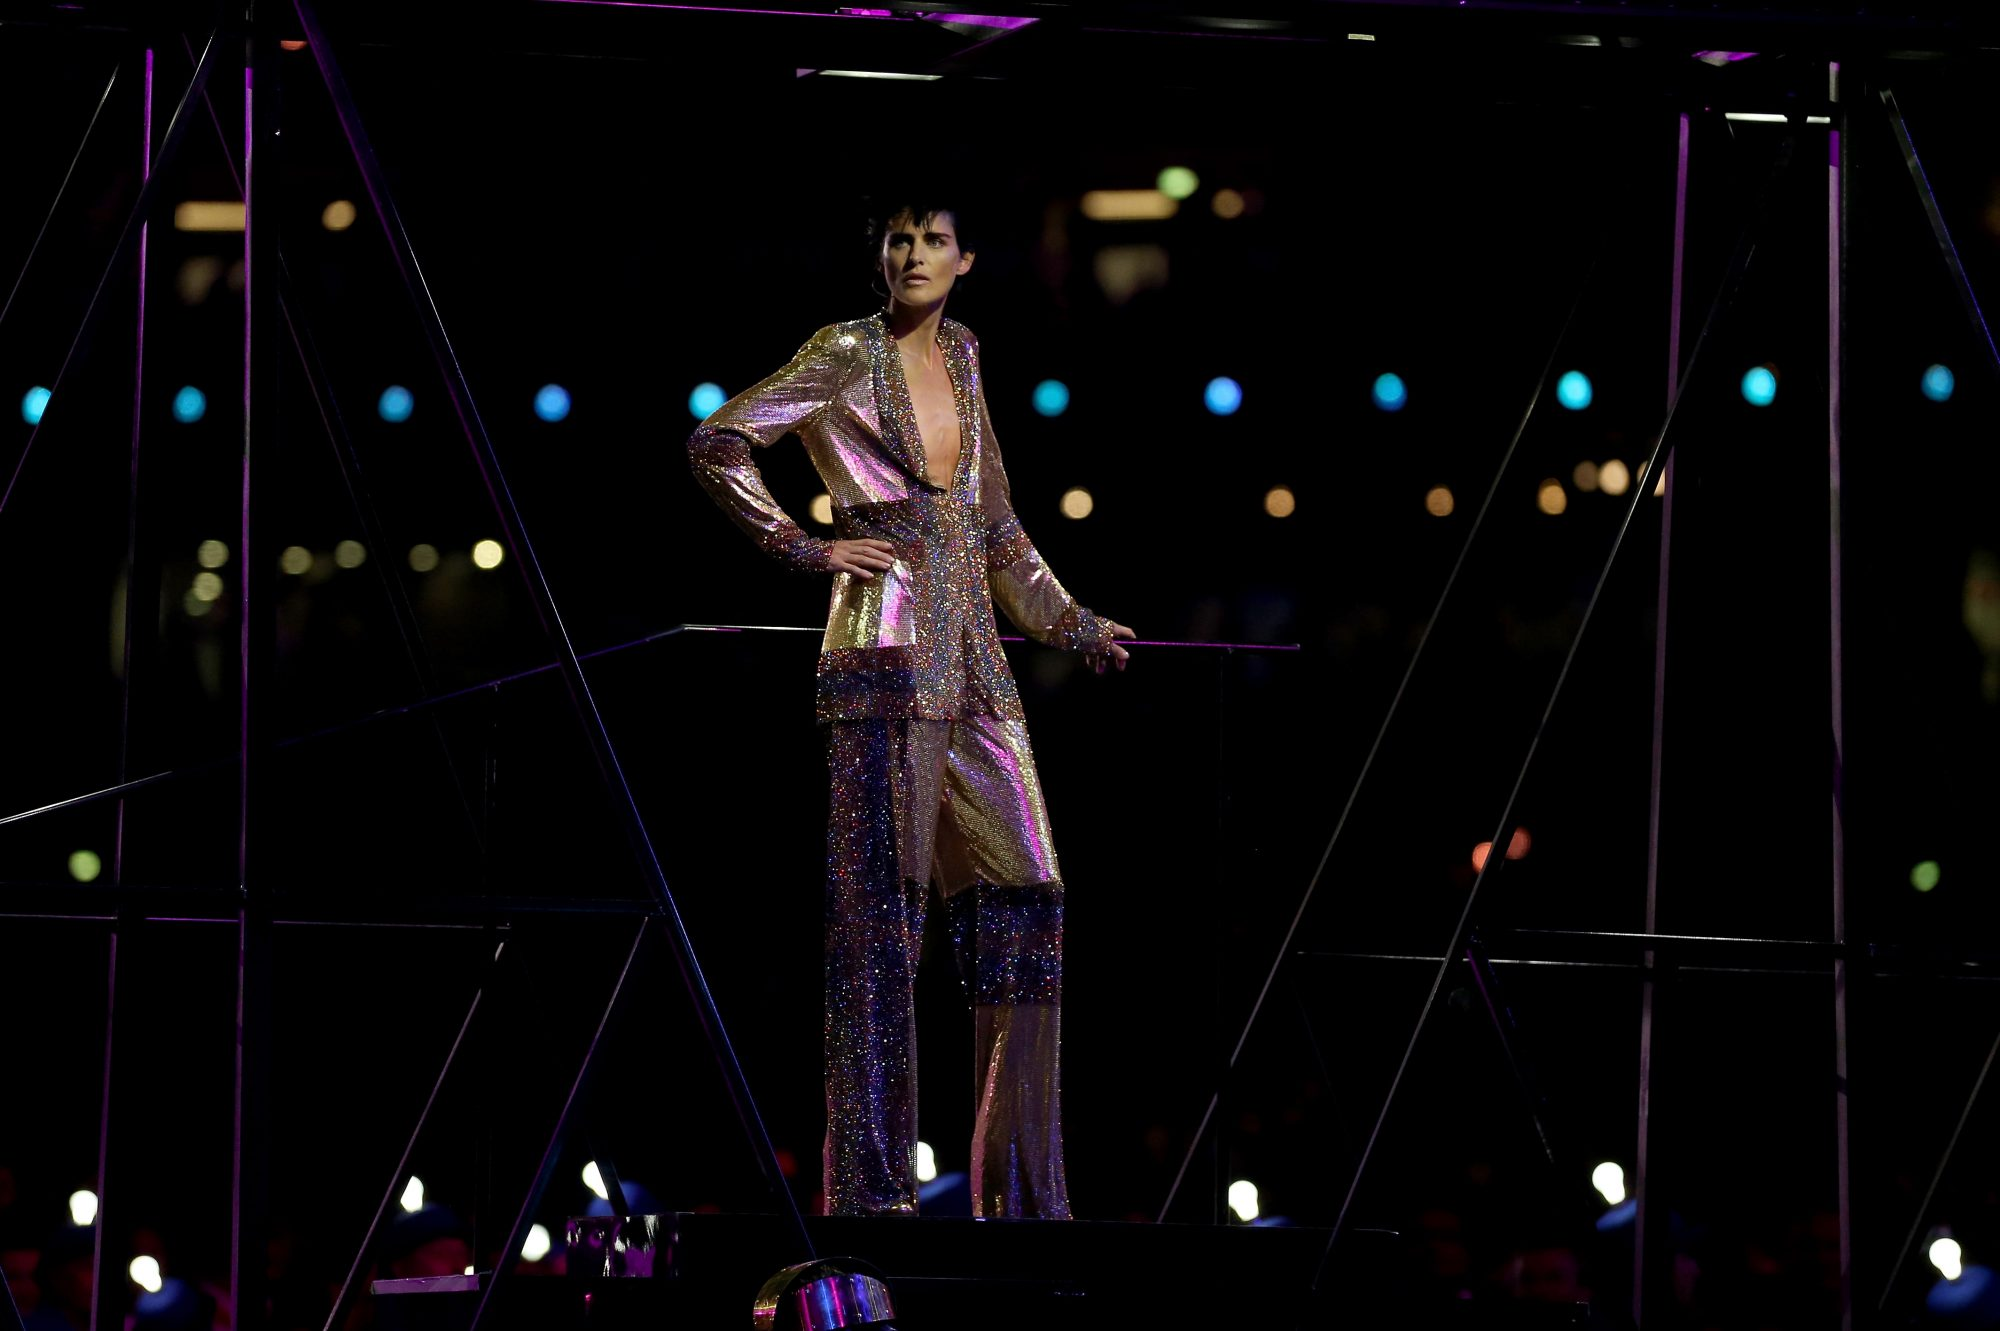 Stella Tennant - 2012 Olympic Games - Closing Ceremony